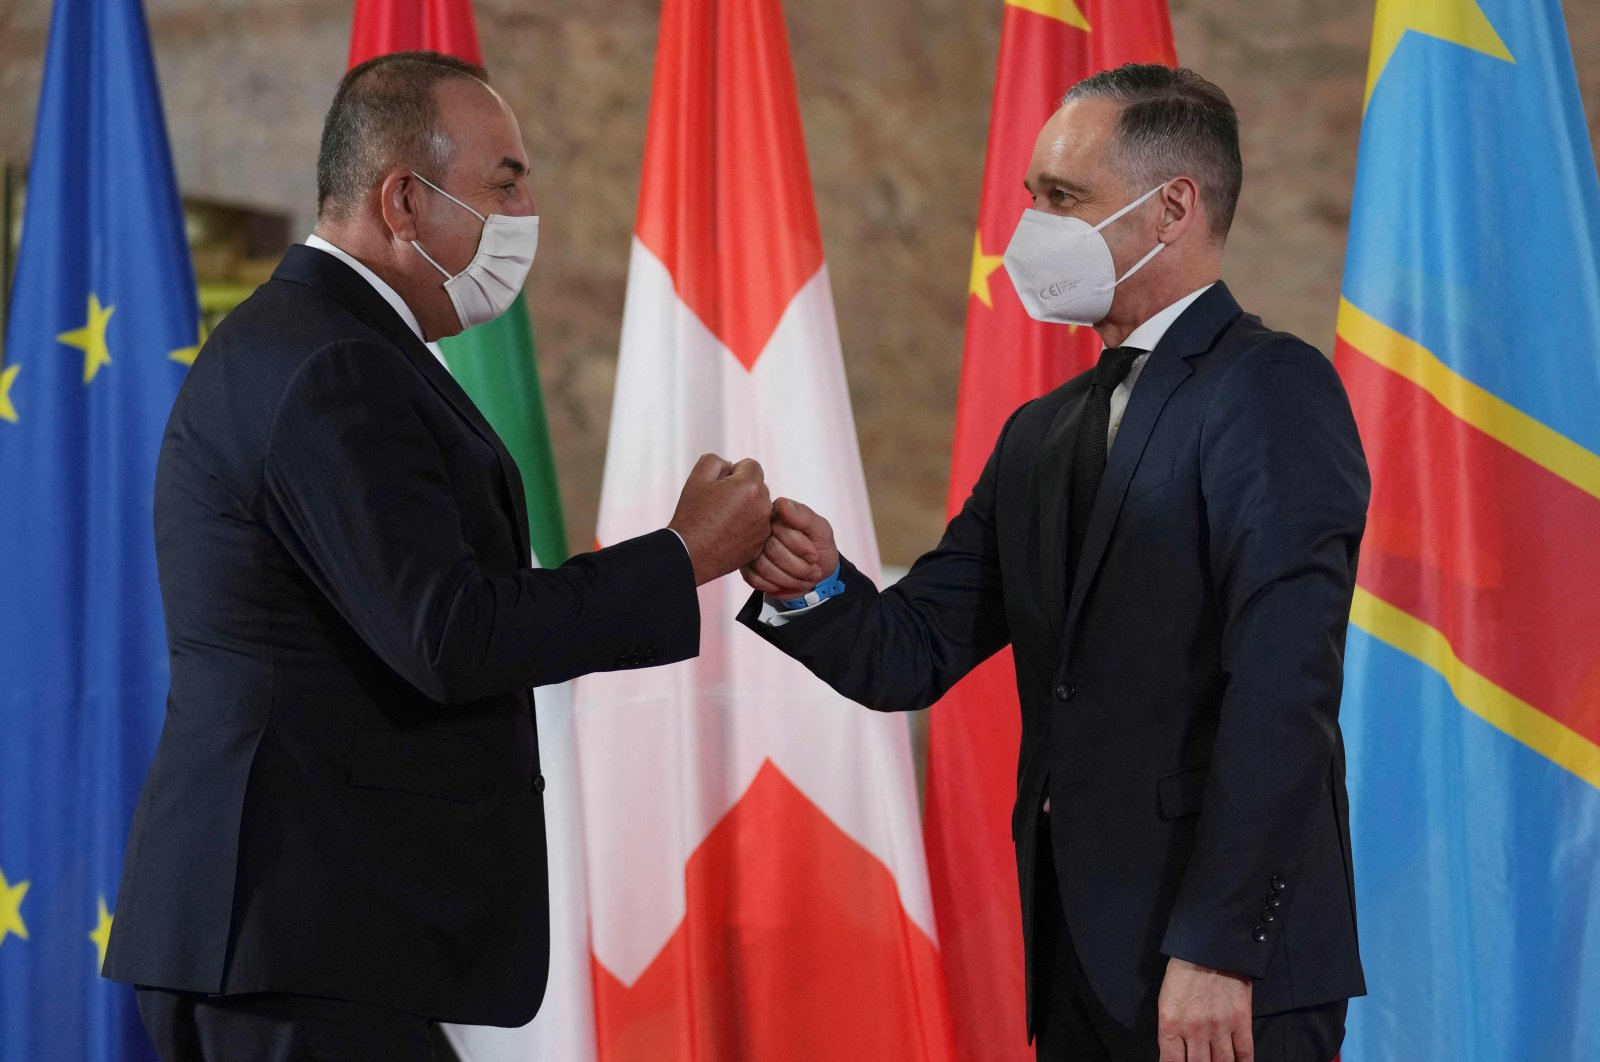 German Foreign Minister Heiko Maas (R) welcomes Turkish Foreign minister Mevlüt Çavuşoğlu for the Second Berlin Conference on peace in Libya at the German Foreign Ministry in Berlin on June 23, 2021. (AFP Photo)